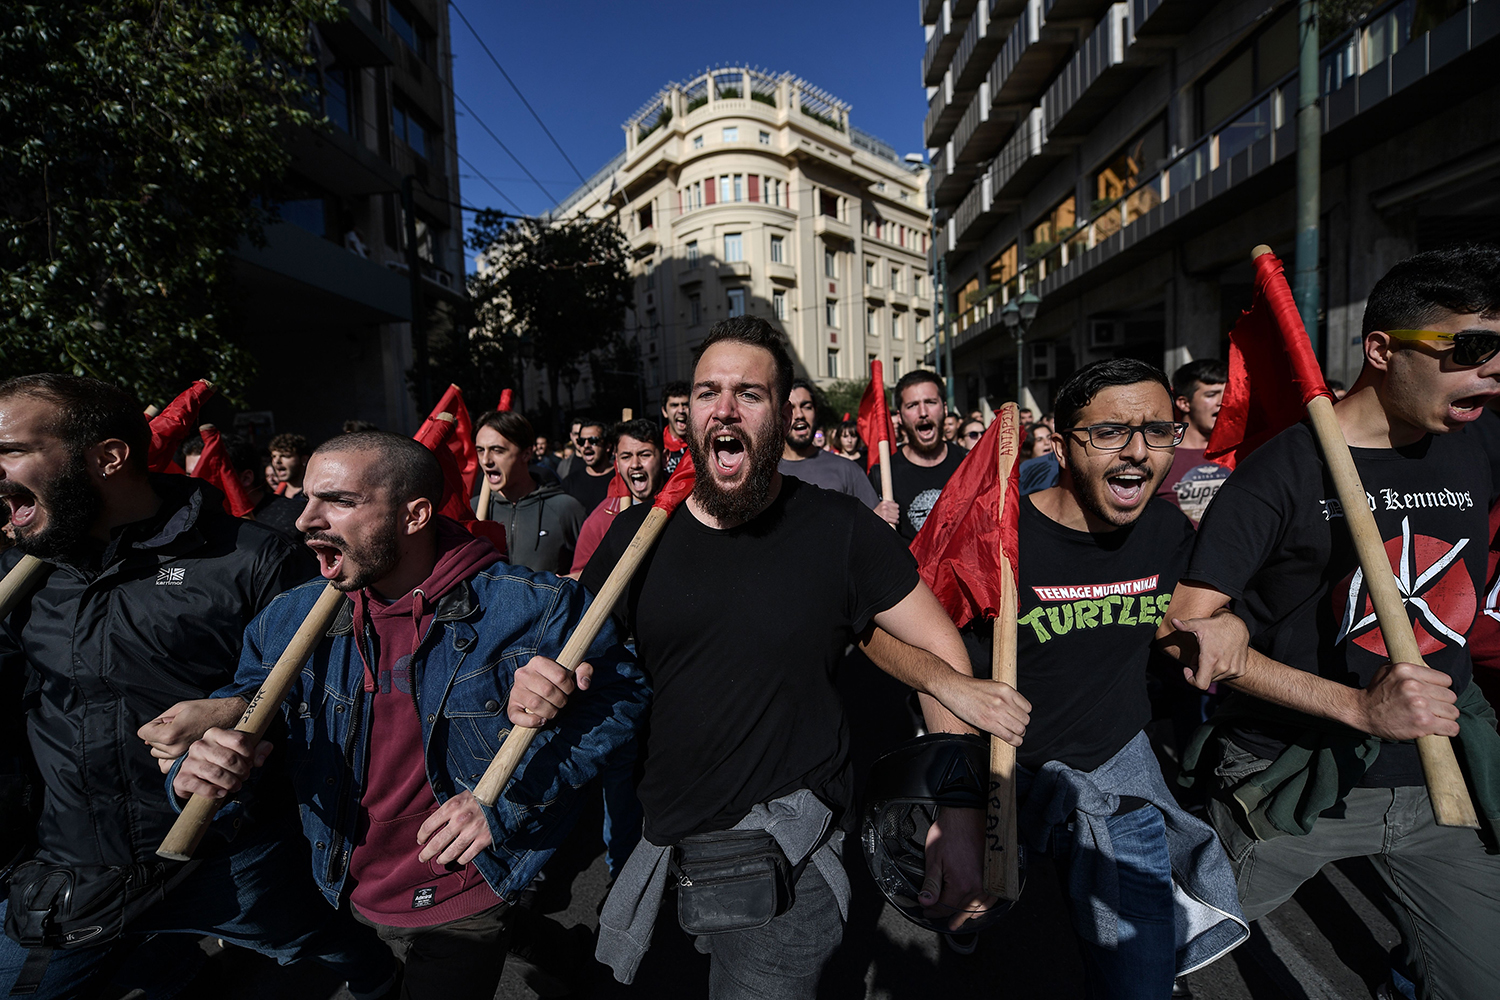 GREECE | Students shout slogans as they demonstrate against recent educational reforms in Athens on Nov. 14. ARIS MESSINIS/AFP via Getty Images